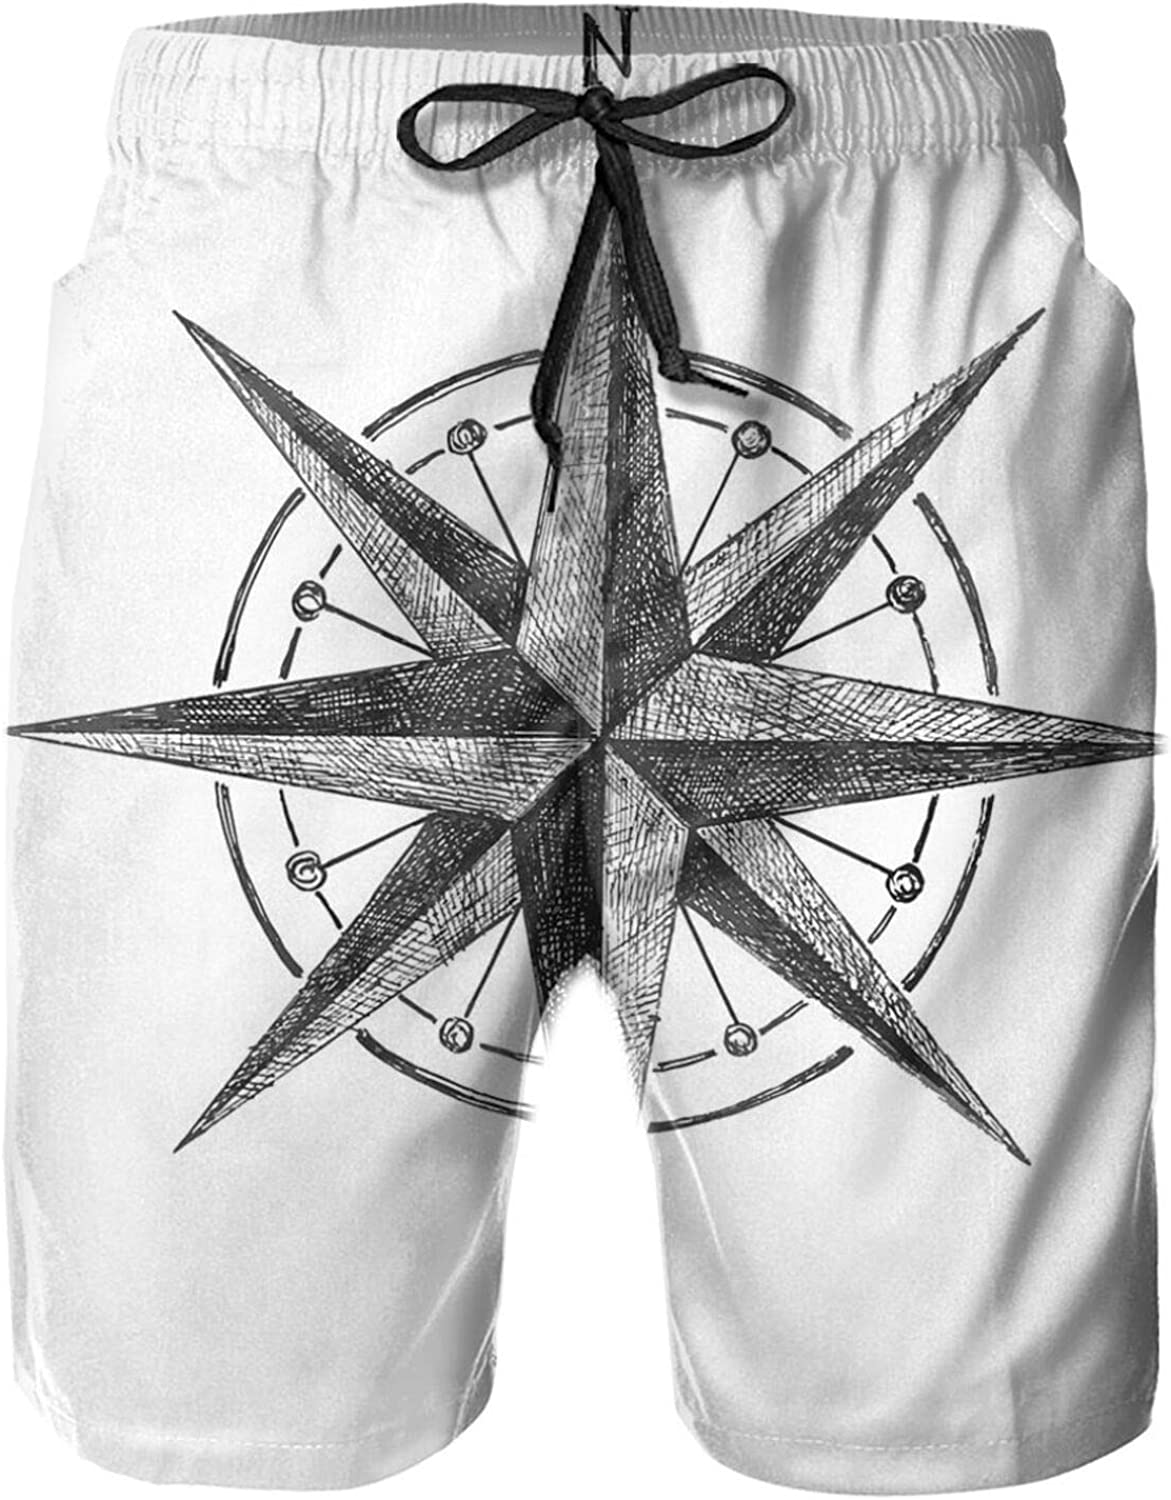 Seamanship Hand Drawn Windrose with Complete Directions North South West Swimming Trunks for Men Beach Shorts Casual Style,M